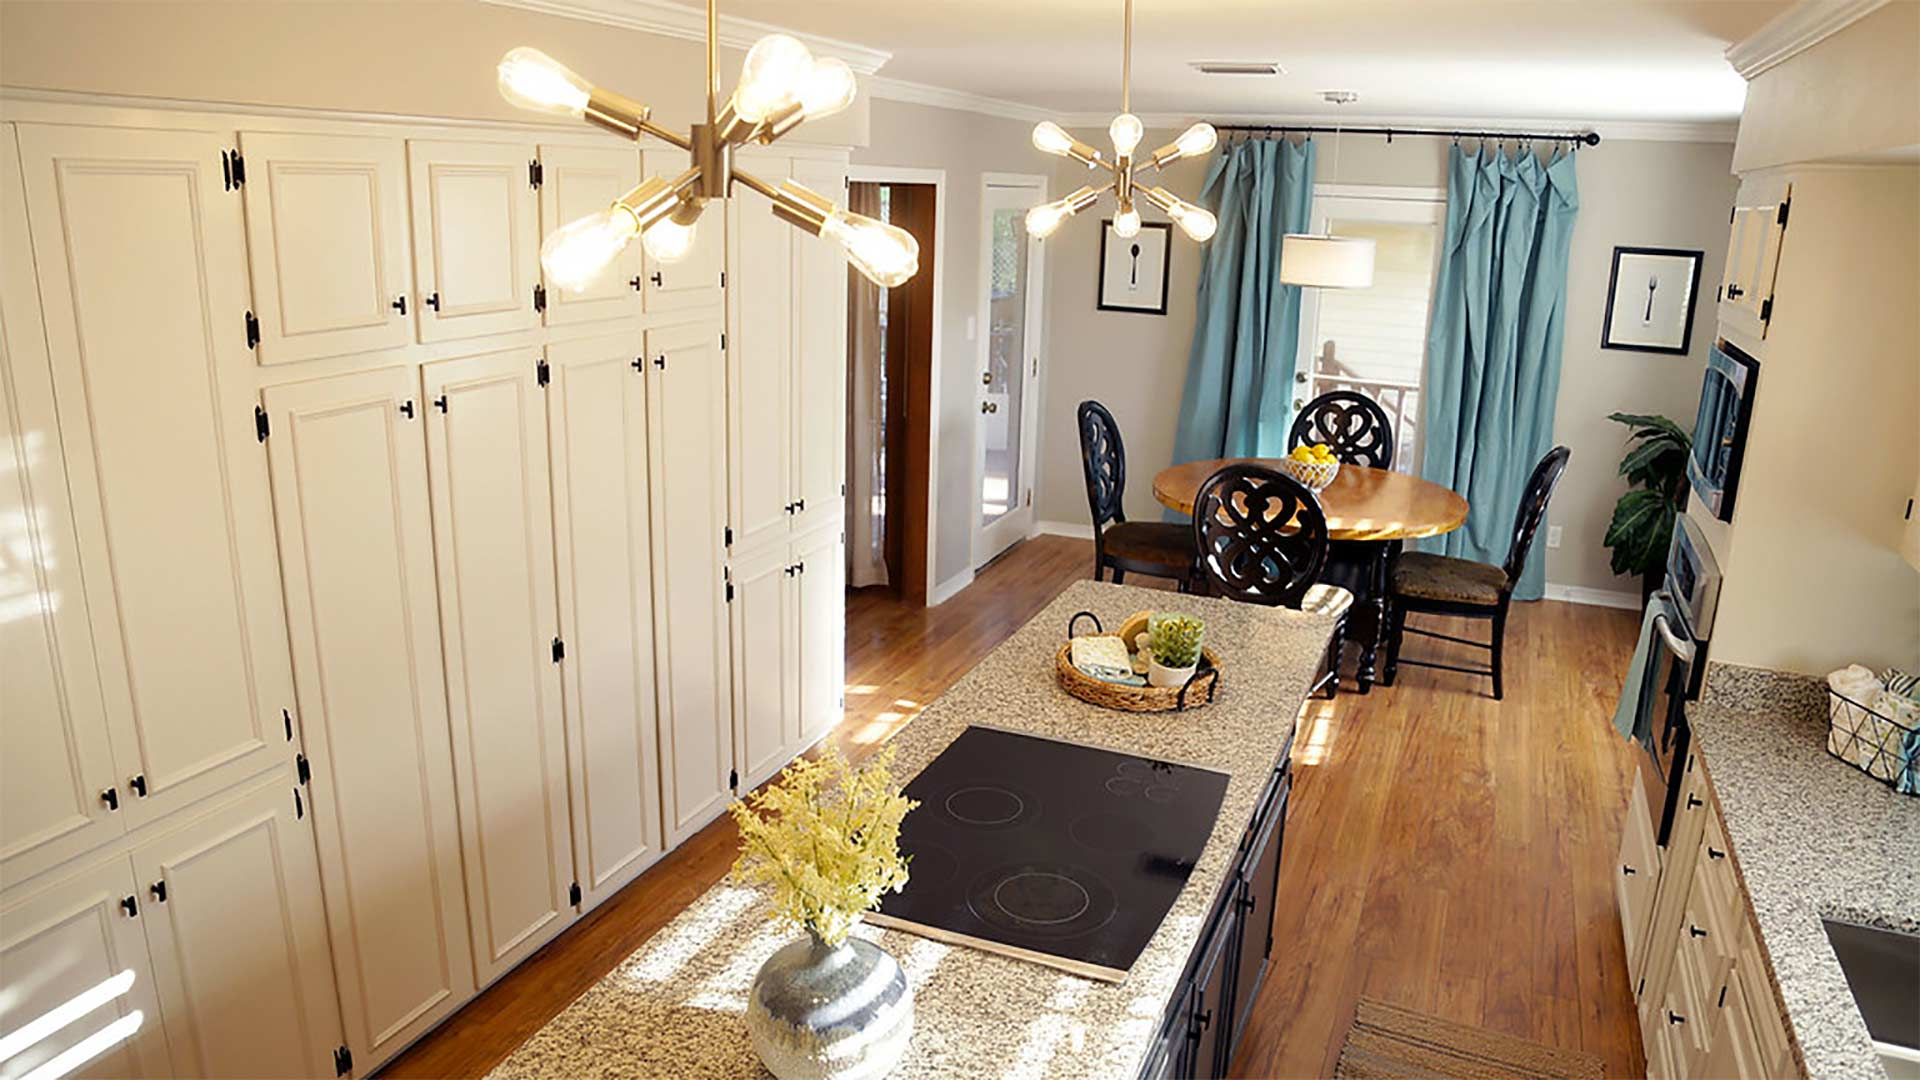 Upgraded kitchen, staged and ready for viewing by homebuyers